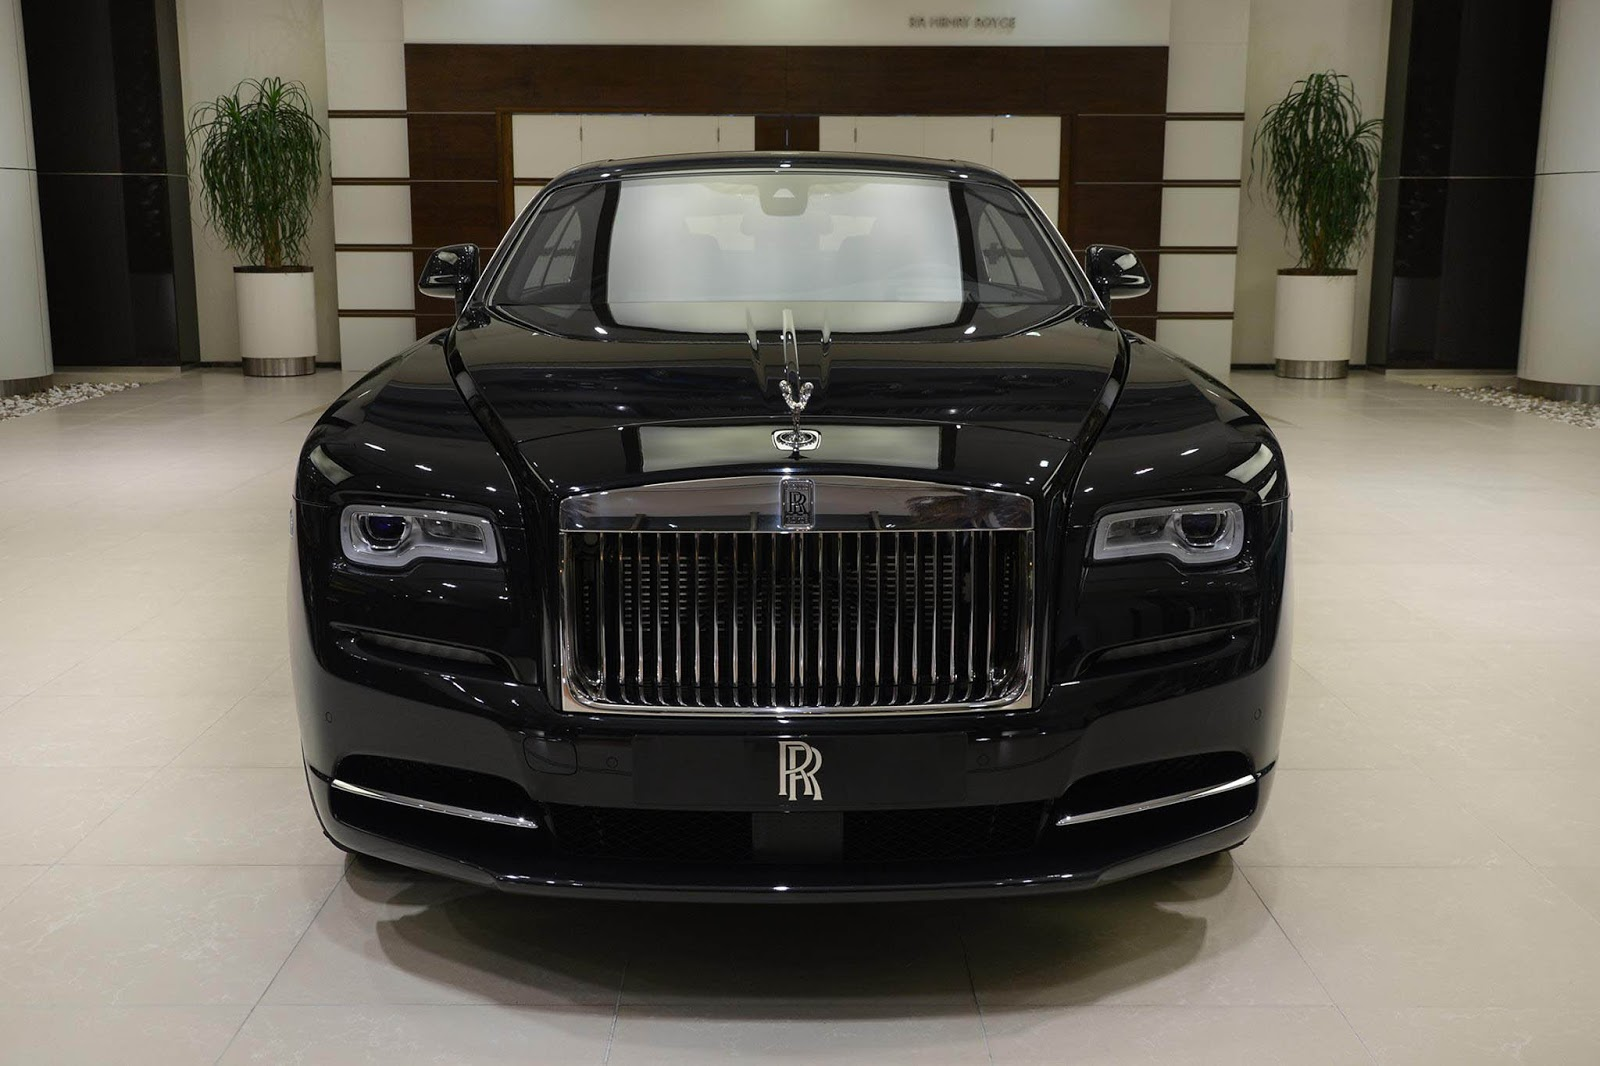 Rolls-Royce Wraith Spirit Of The Union Edition Celebrates